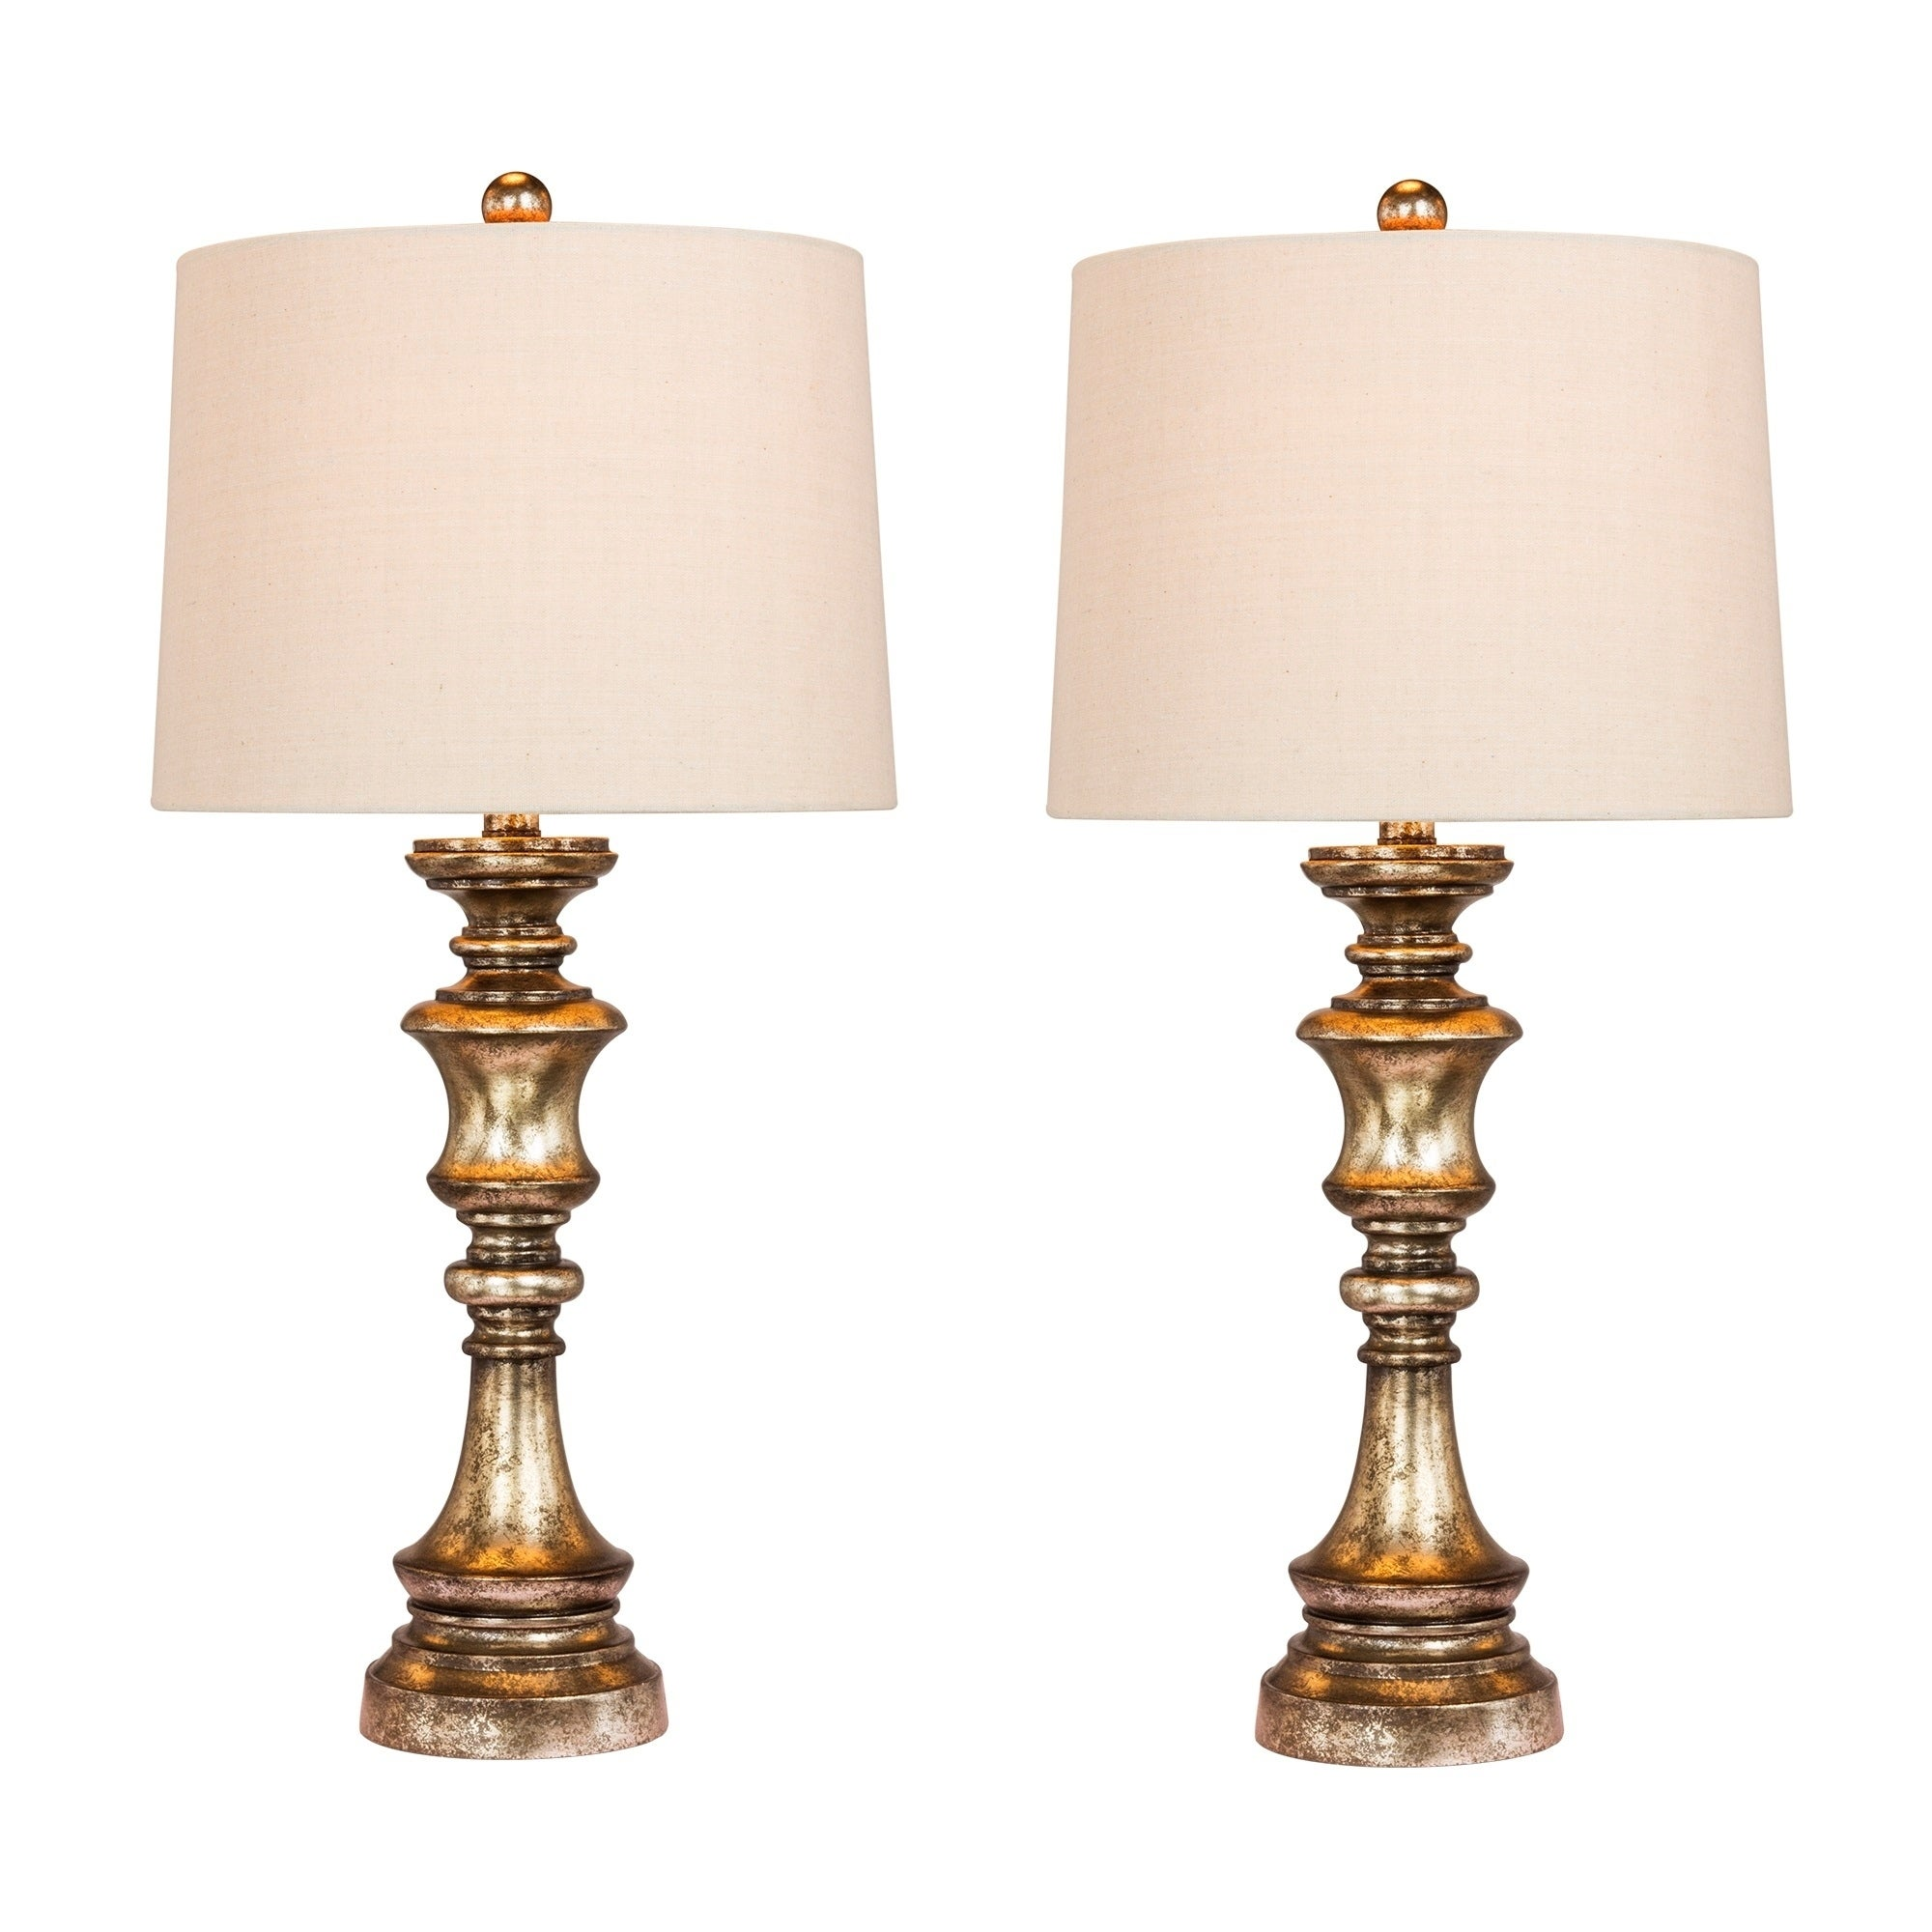 Fangio Lighting S 6236gb 2pk Pair Of 27 75 In Candlestick Resin Table Lamps In A Gold Leaf With Brown Wash Finish Overstock 18055018